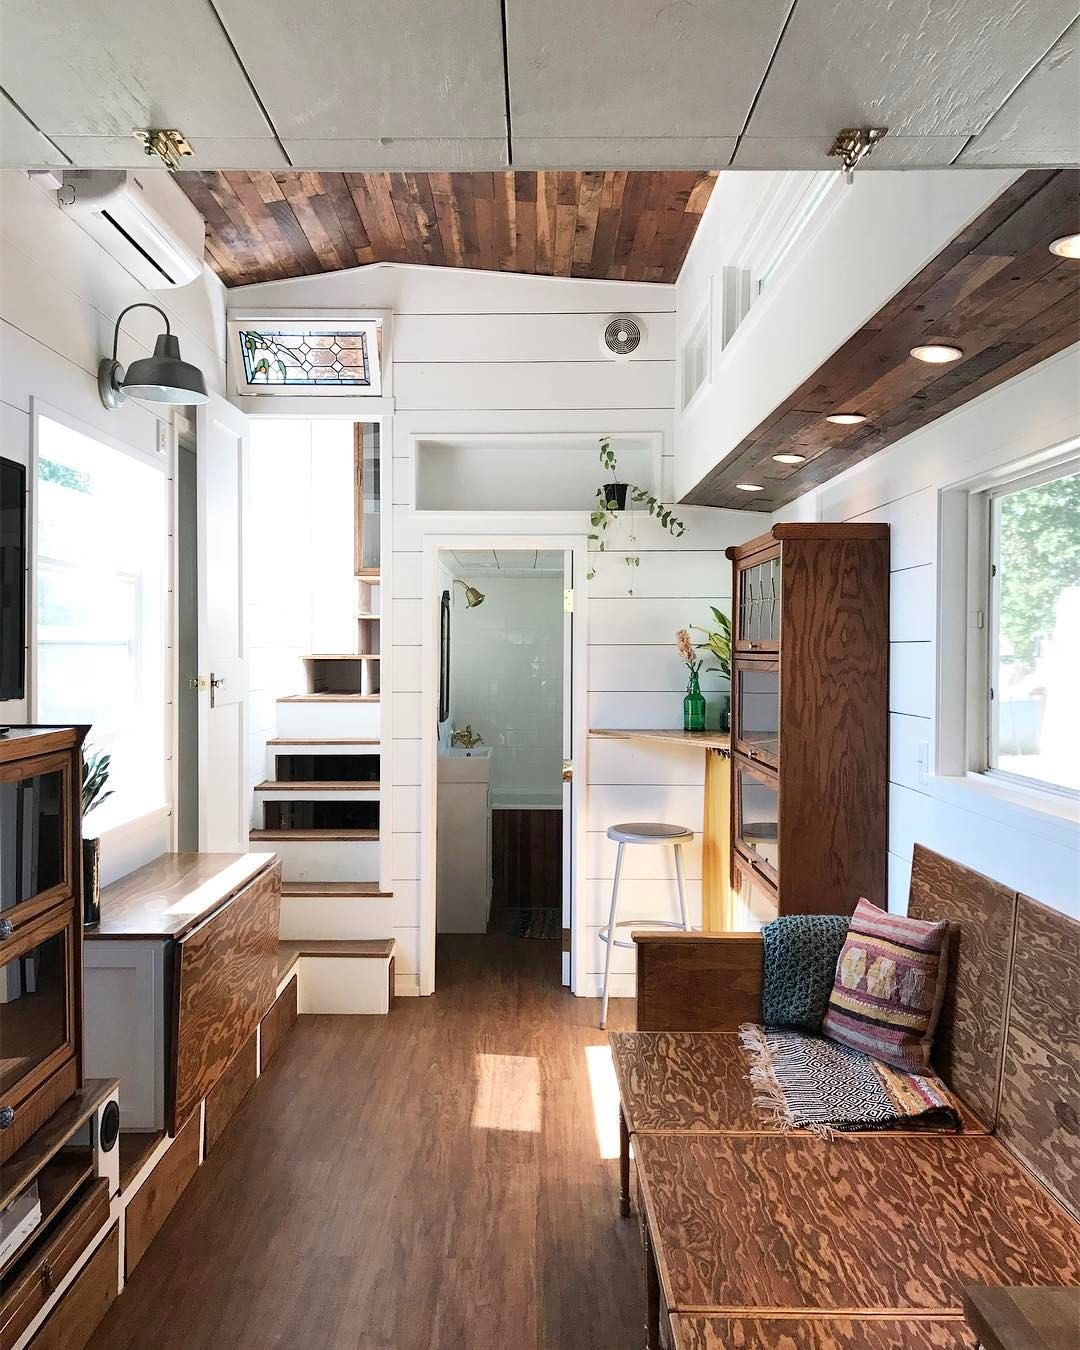 1 093 Likes 79 Comments Shalina Hertinyhome On Instagram I M Overwhelmed What An Amazing Day Sharin Tiny House Loft Small Tiny House Tiny House Plans